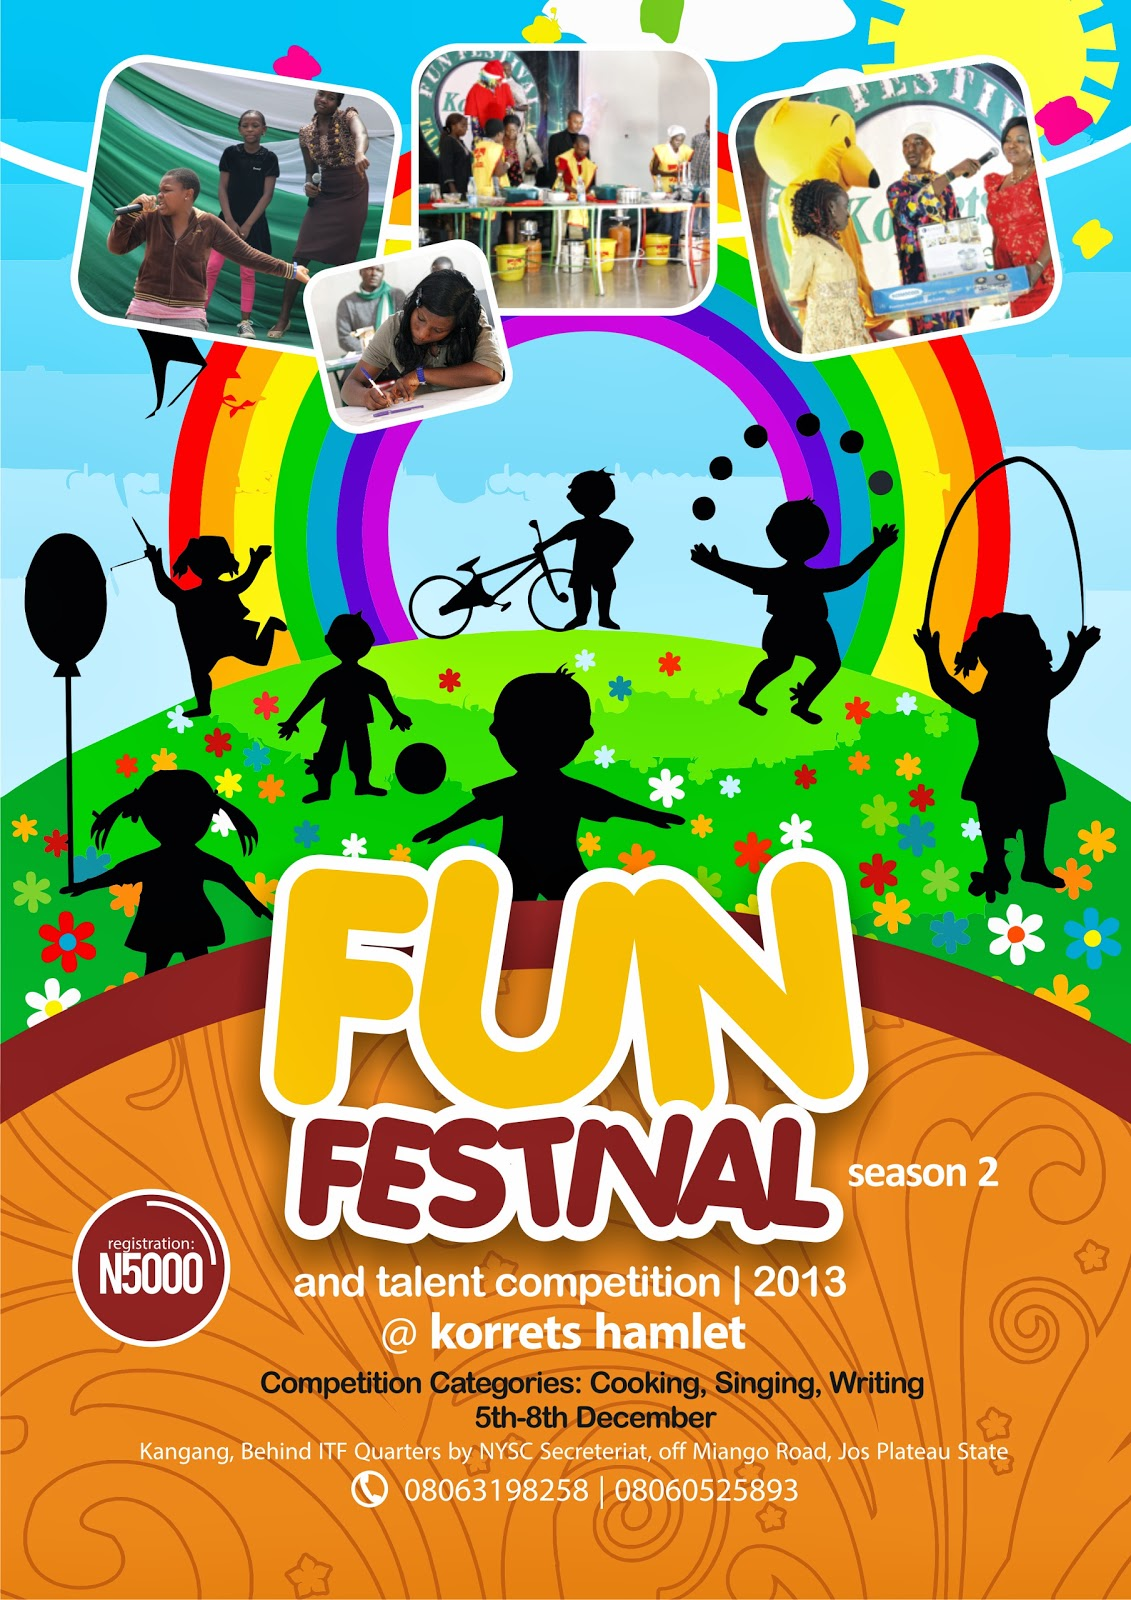 swagg news africa kiddies fun festival and talent competition 2013 hosted by korrets. Black Bedroom Furniture Sets. Home Design Ideas